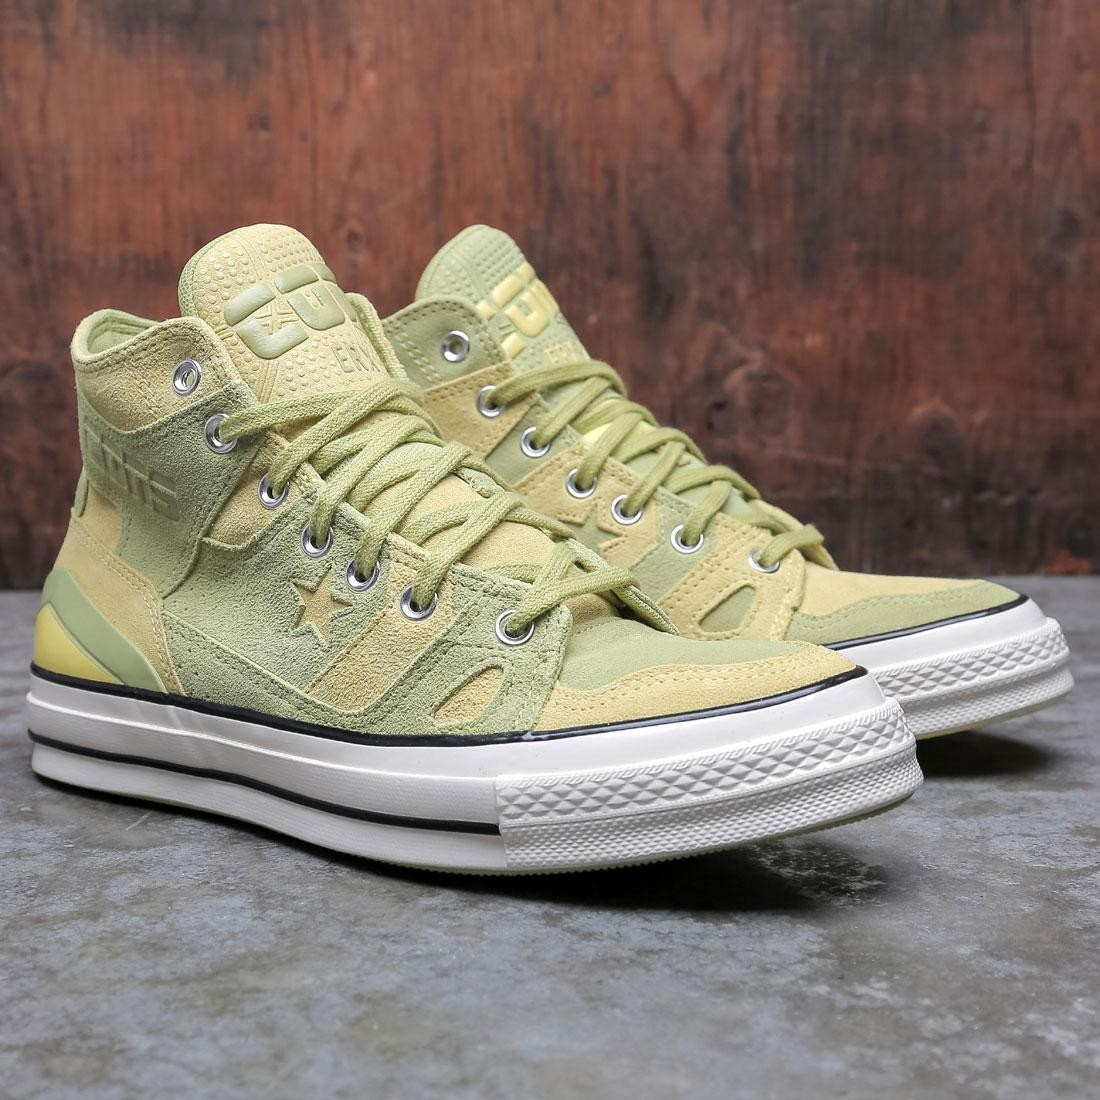 Converse Men Earth Tone Suede Chuck 70 E260 (yellow / green banana / limelight / egret)